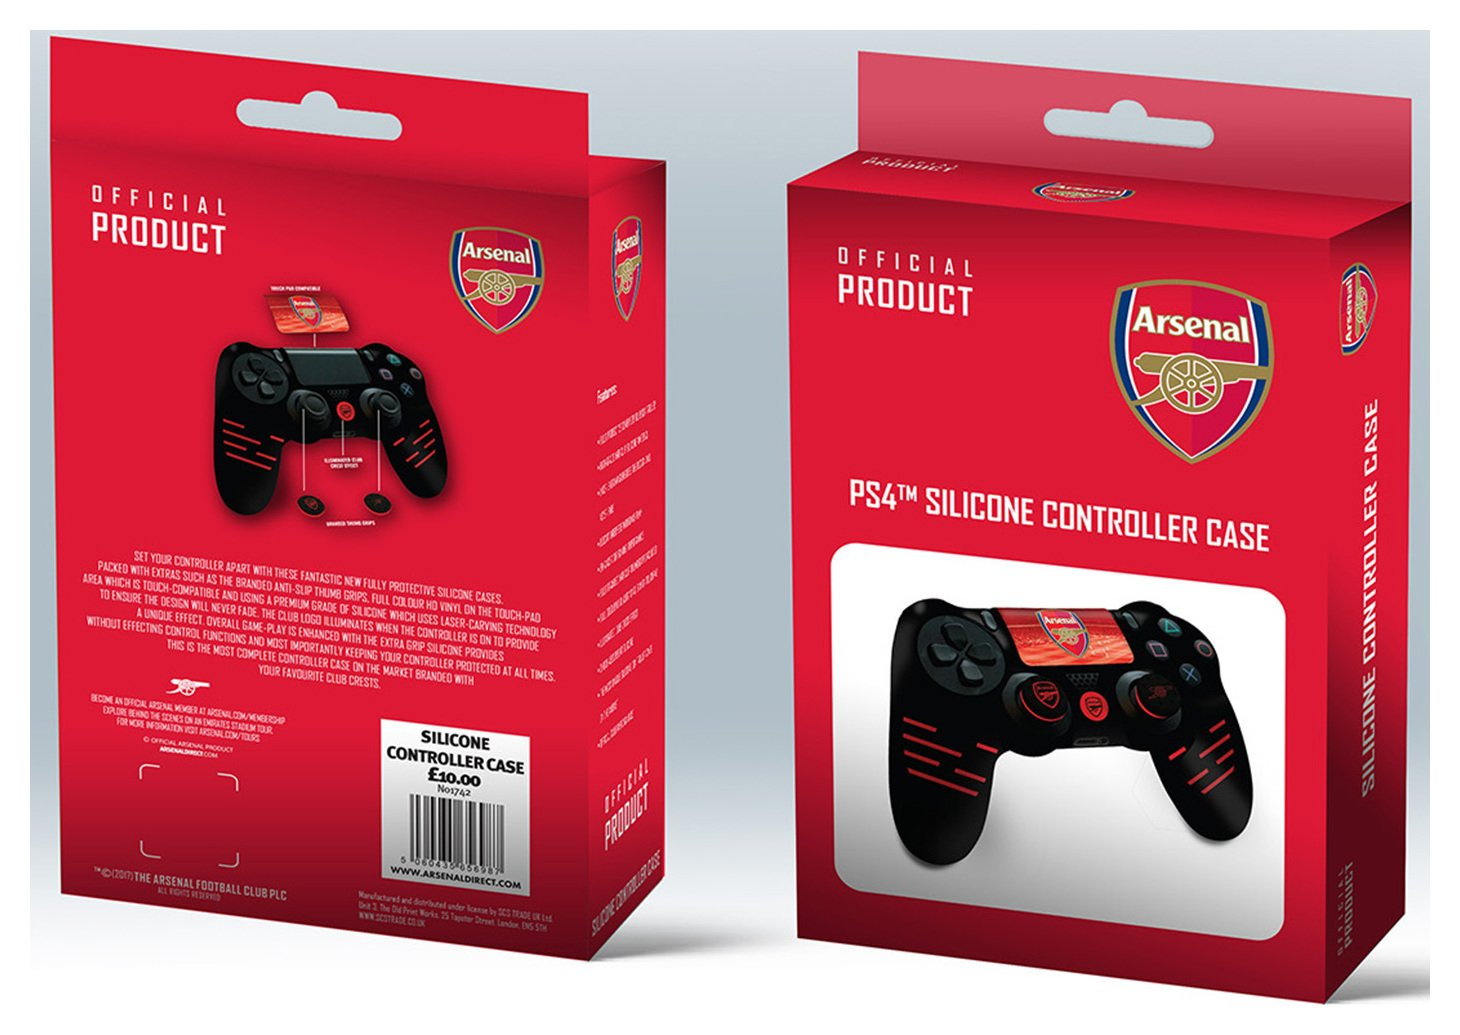 'Official Arsenal Silicone Ps4 Controller Case